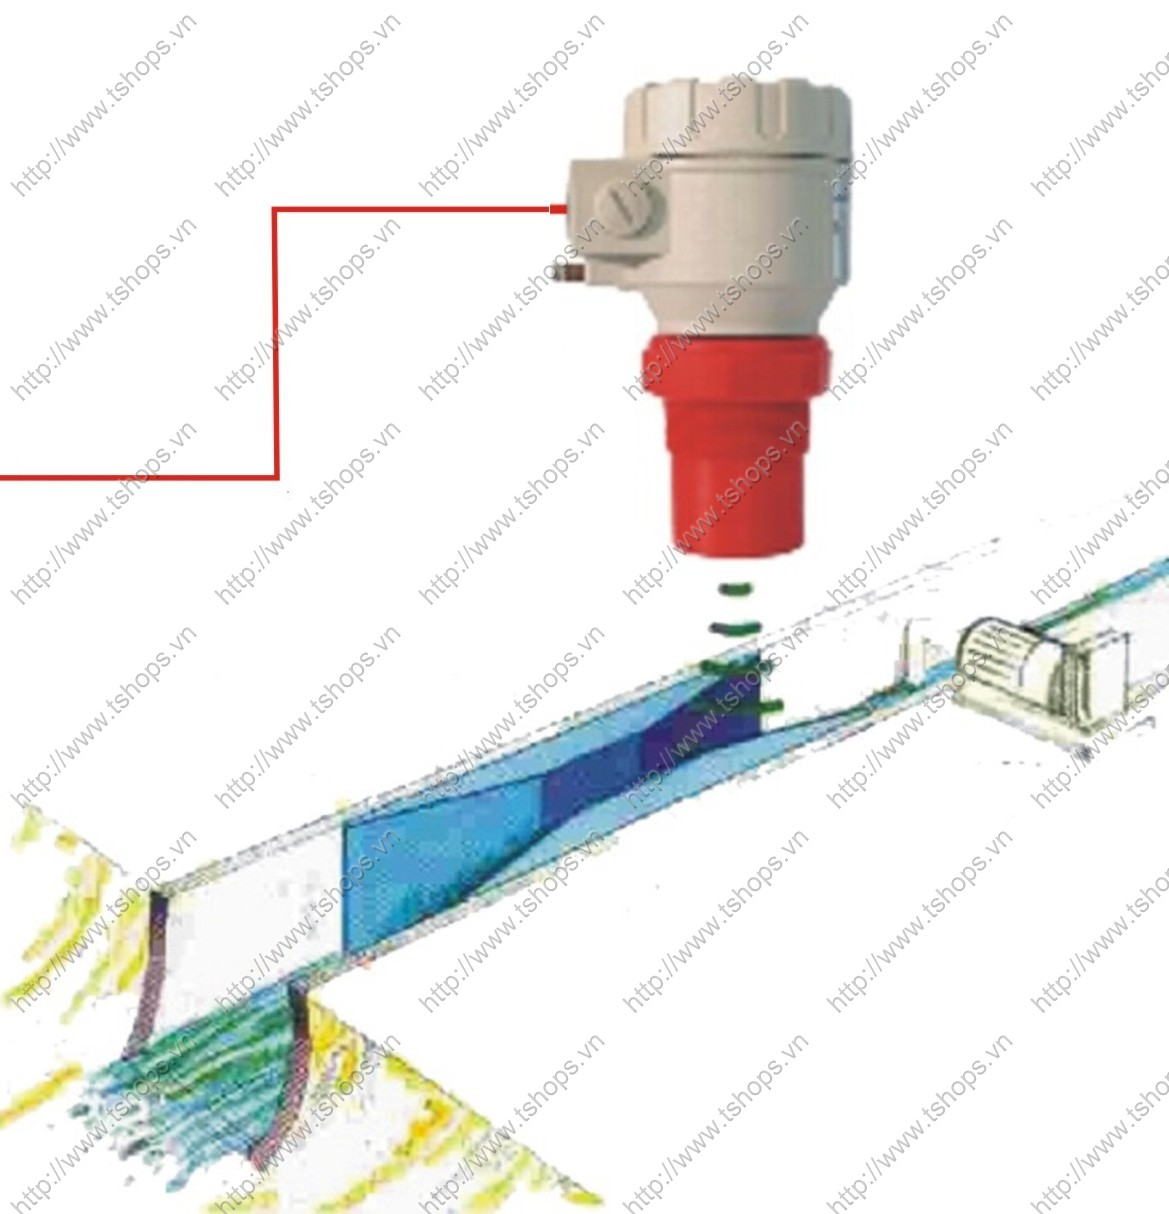 PARSHALL flume - (Open channel flow meters)